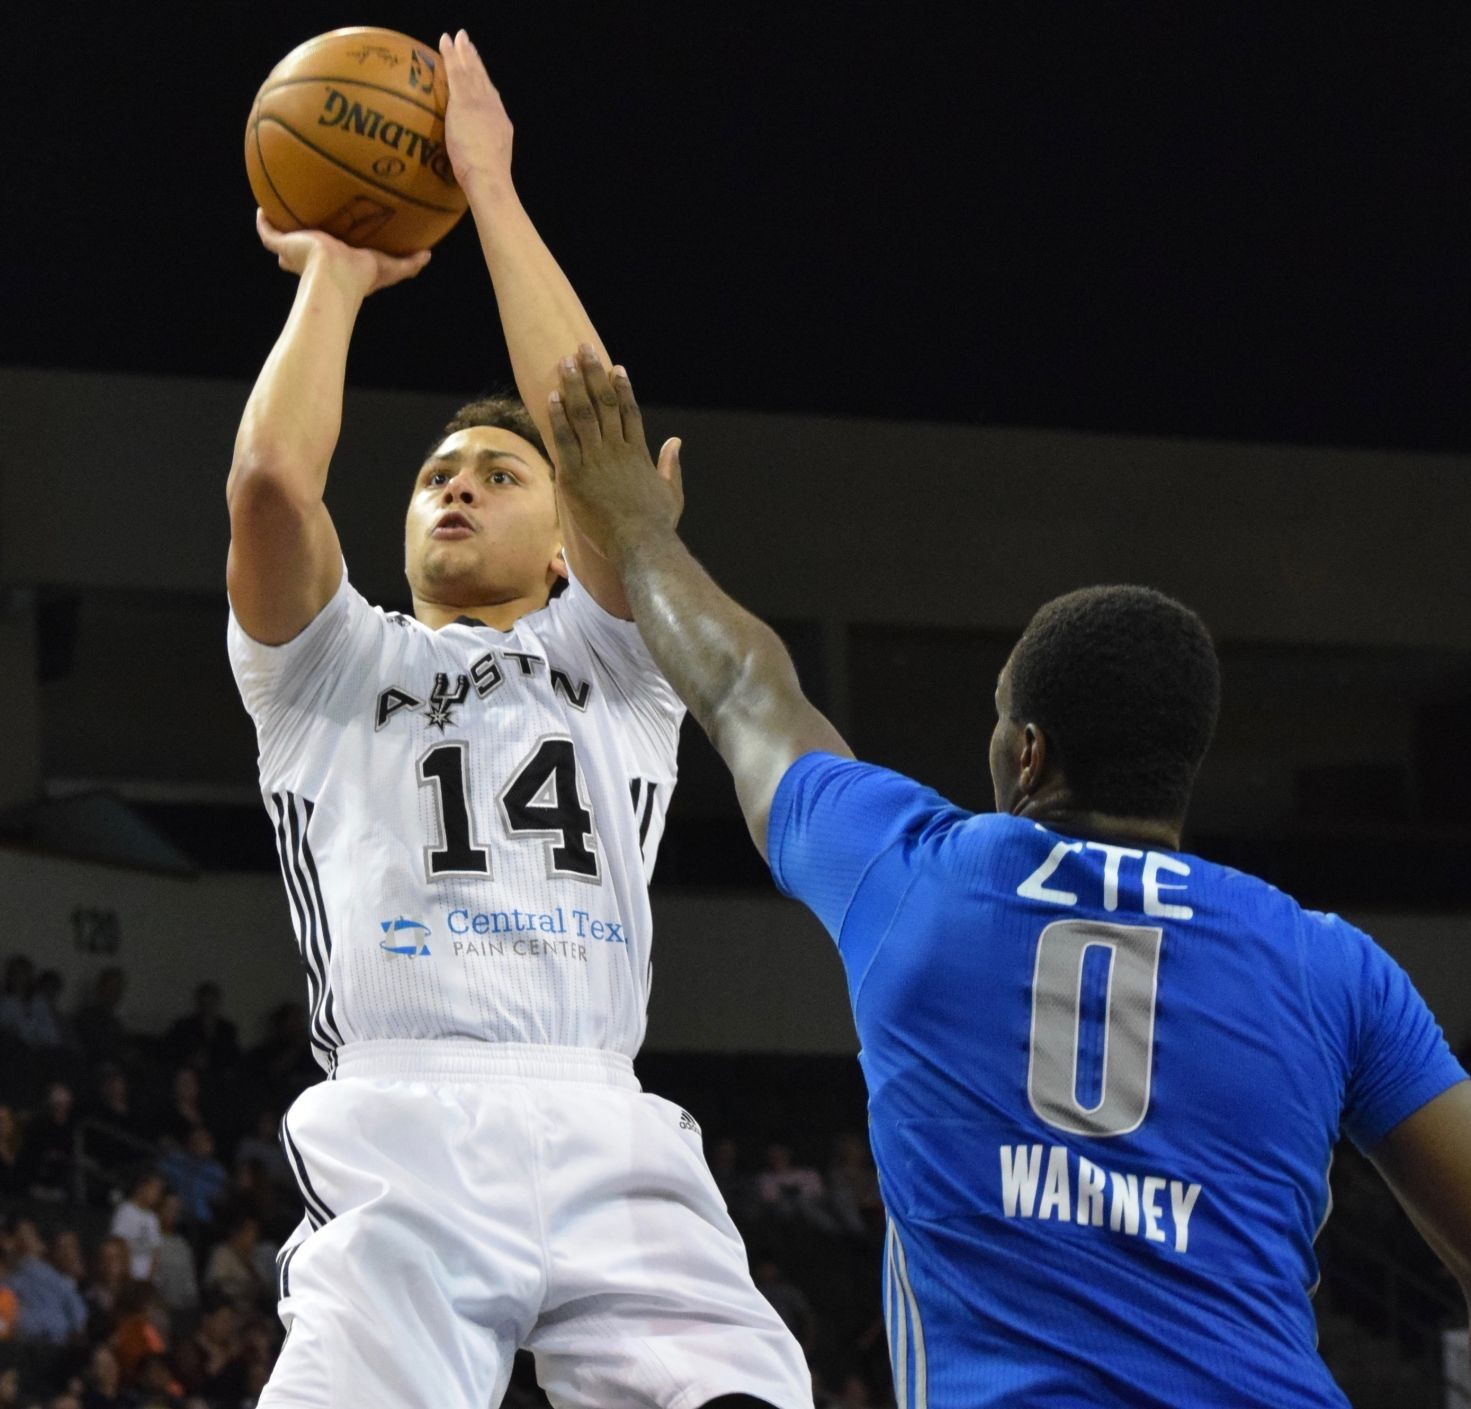 Bryn Forbes set a Summer League record with his 31-point performance in San Antonio's 101-95 win against the Philadelphia 76ers on Sunday. He led Austin averaging 23.4 points per game last season.